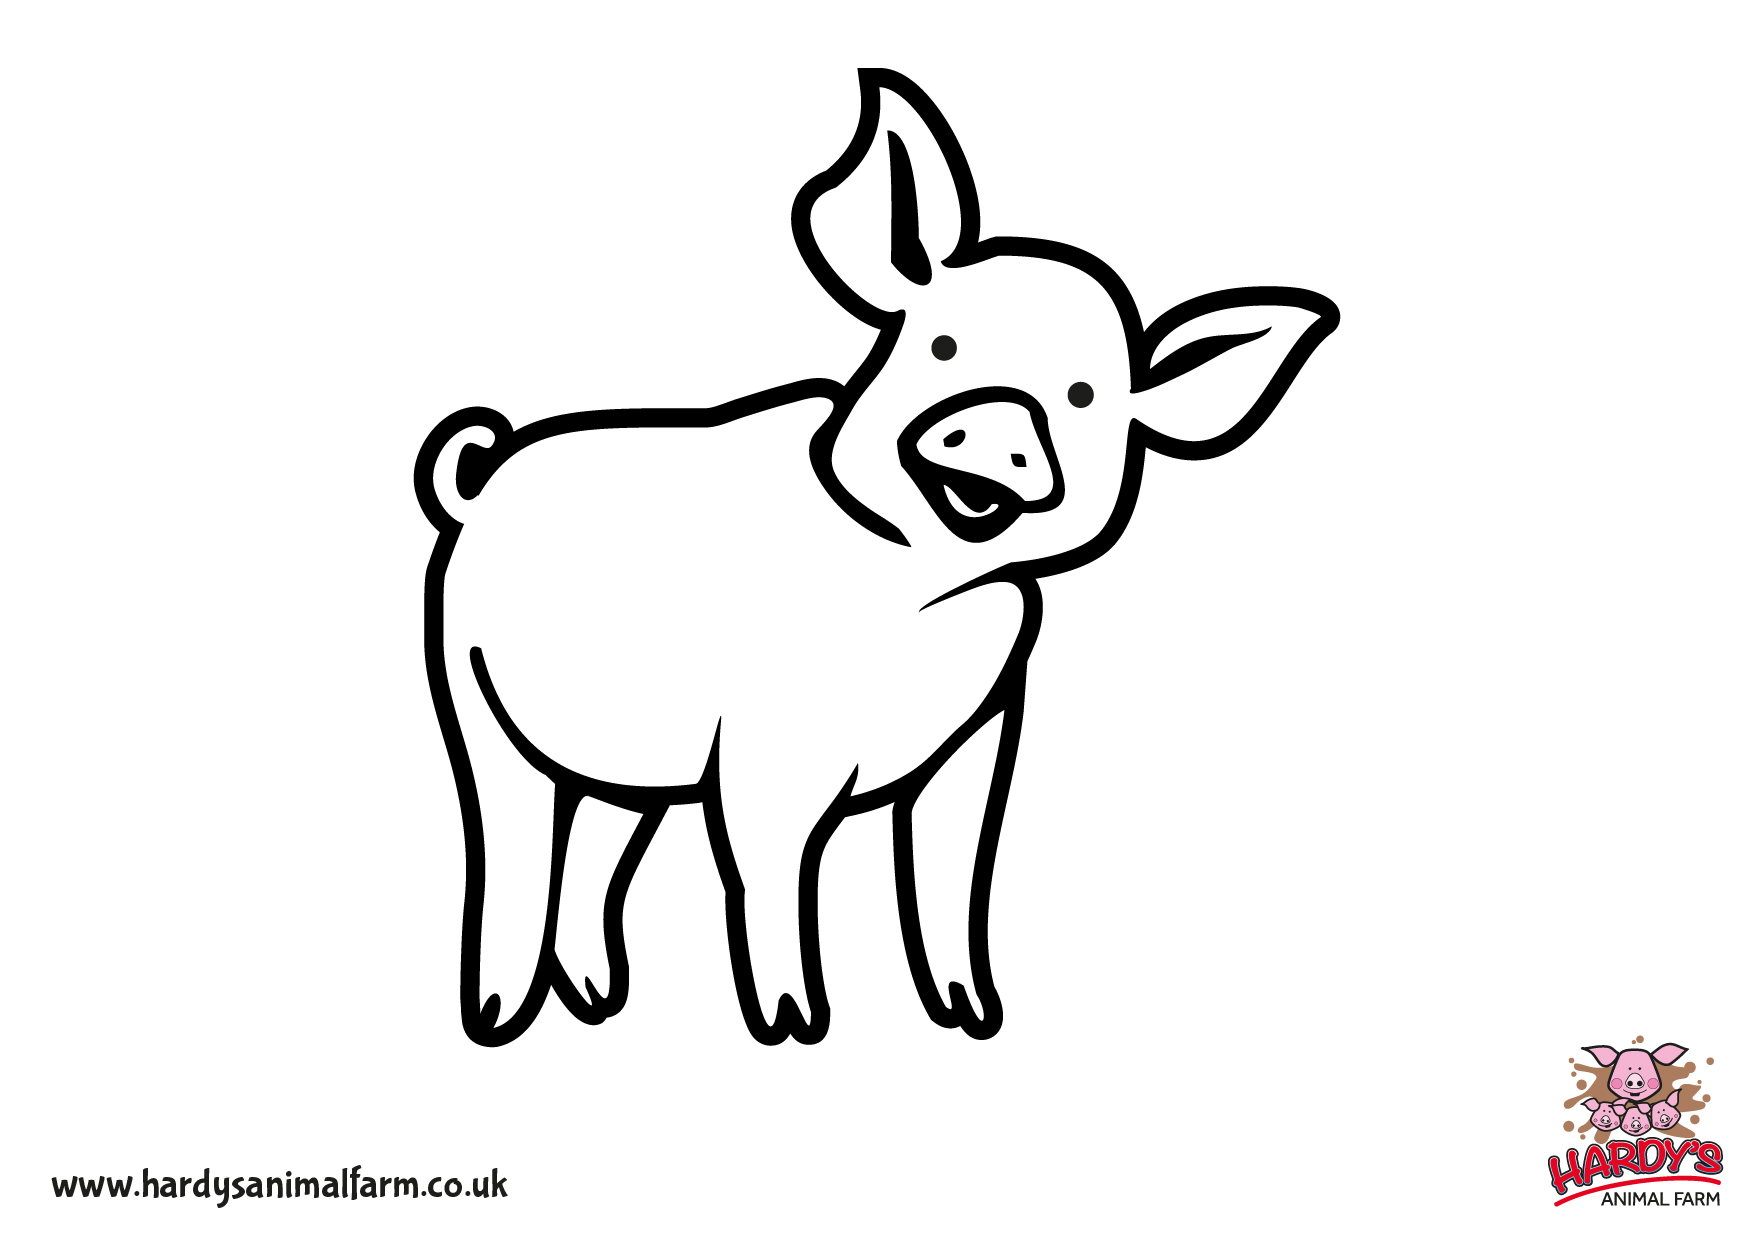 Colour In Your Favourite Animals From Hardys Animal Farm With These Free Pages To Download And Print